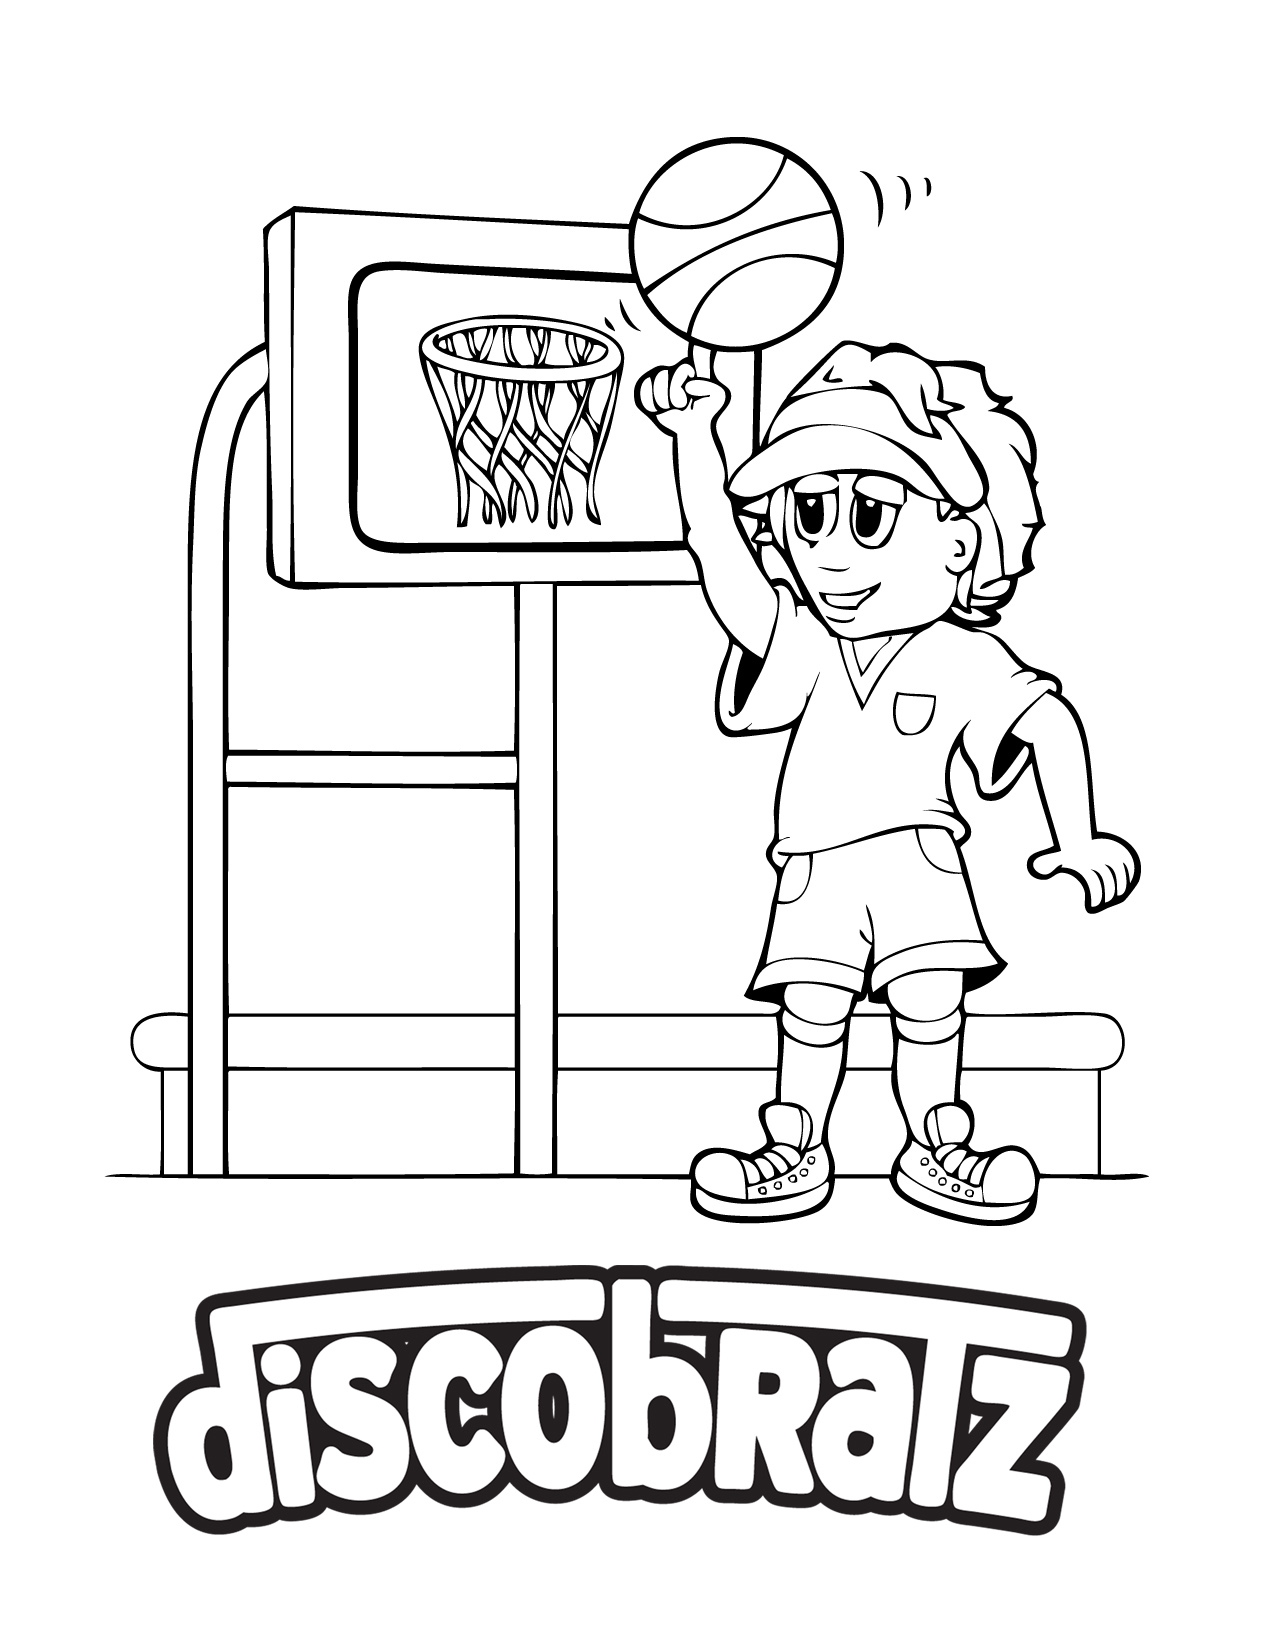 The New DiscoBratz March Madness Coloring Page Is Now